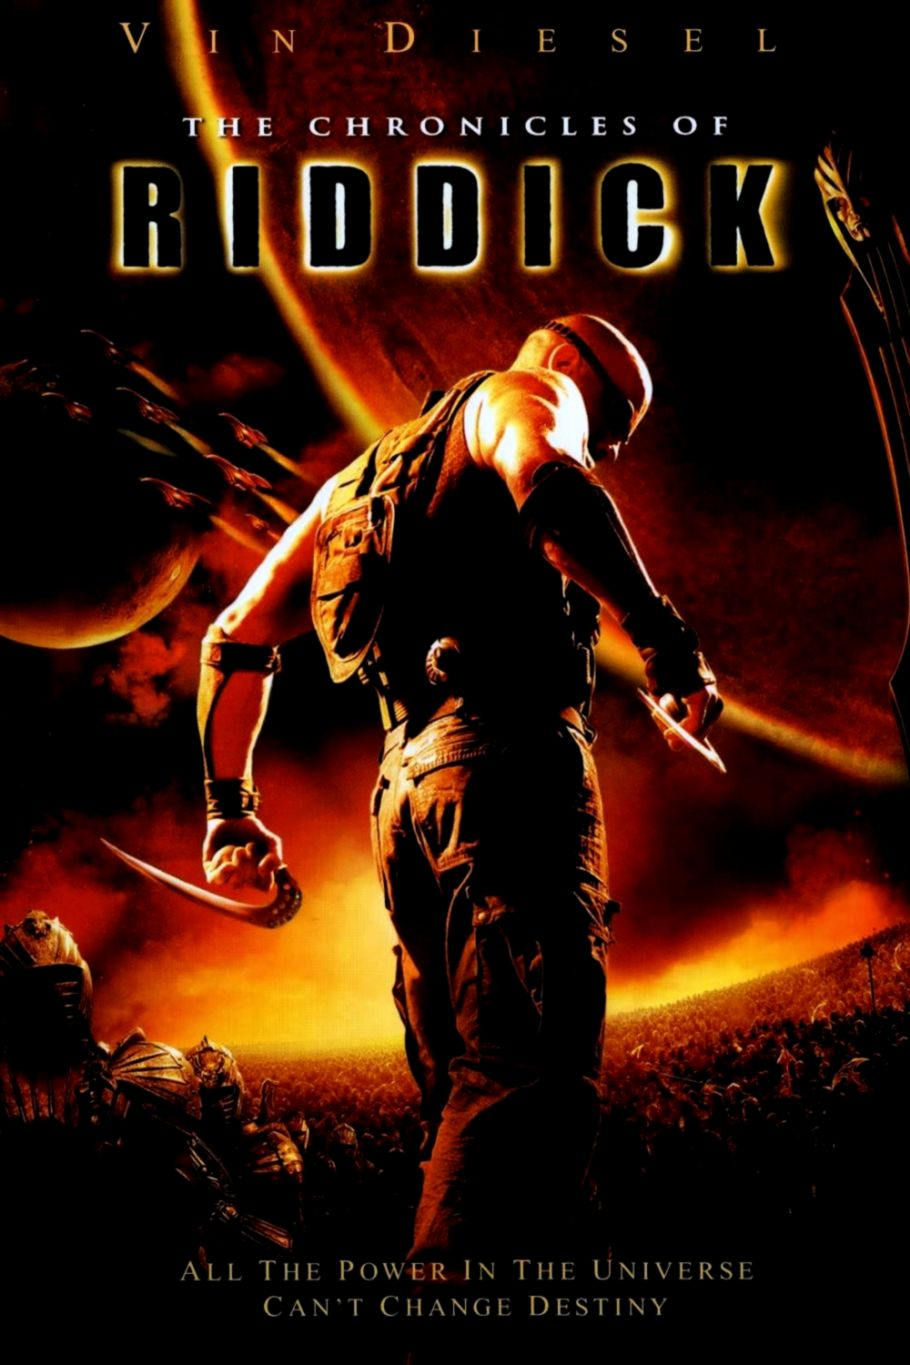 Movie Wallpaper Riddick Movie Poster Important Wallpapers